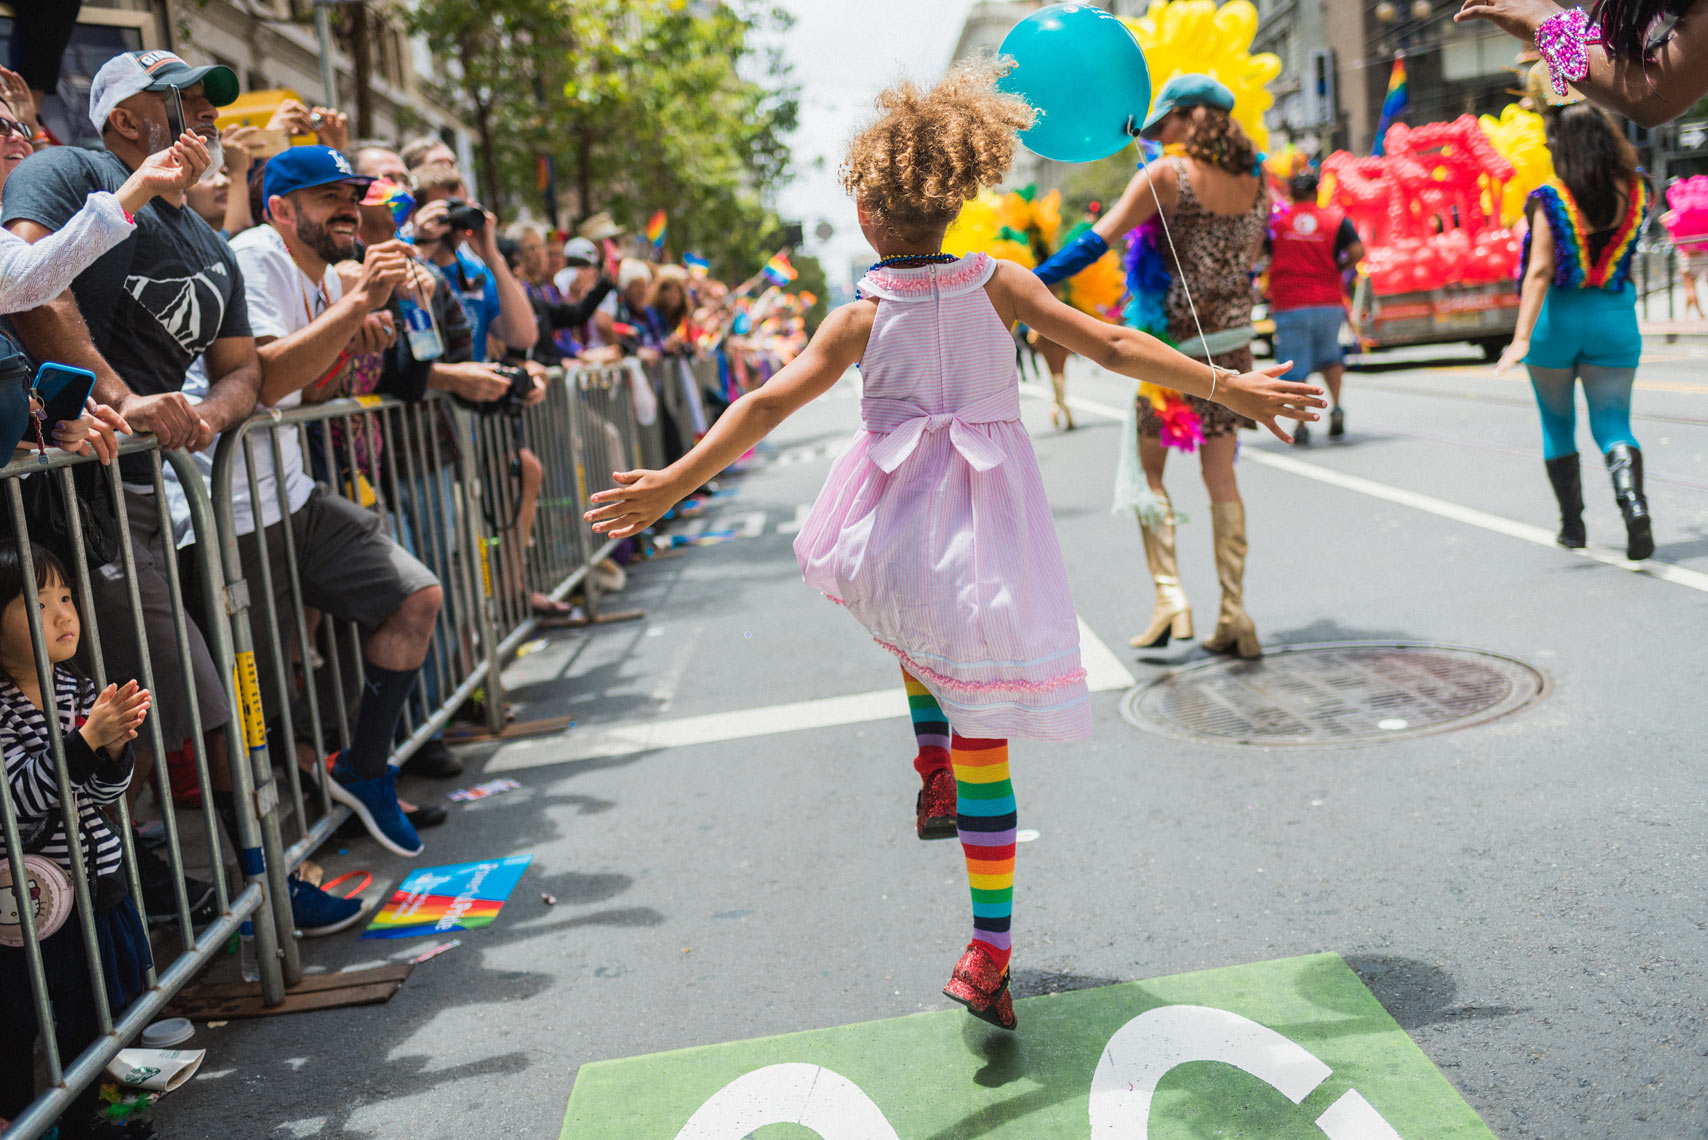 20150628_sanfrancisco-pride-skipsocks-4403